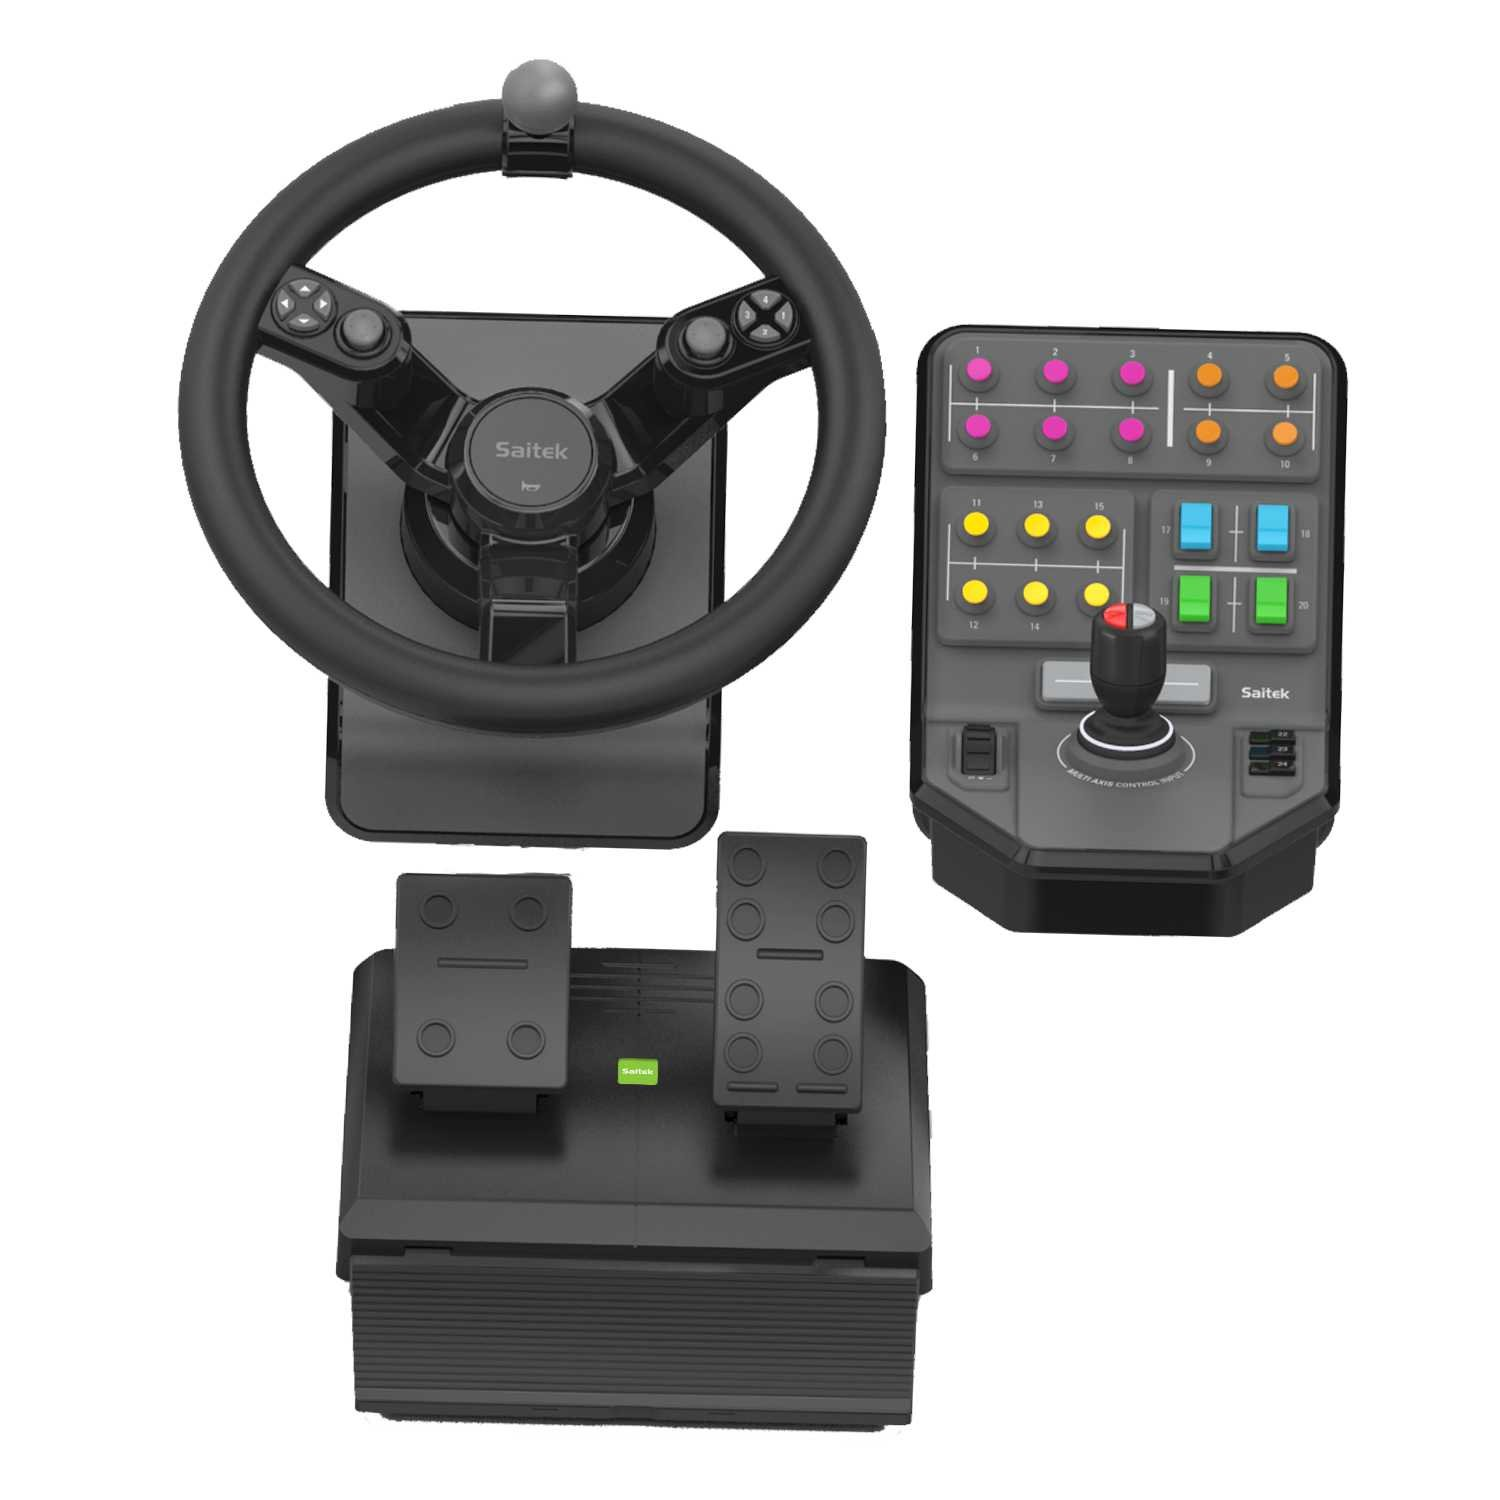 Saitek Farming Simulator Wheel Pedals Vehicle Side Four Way Hat Switch Panel Bundle Scb432160002 01 1 Computers Accessories